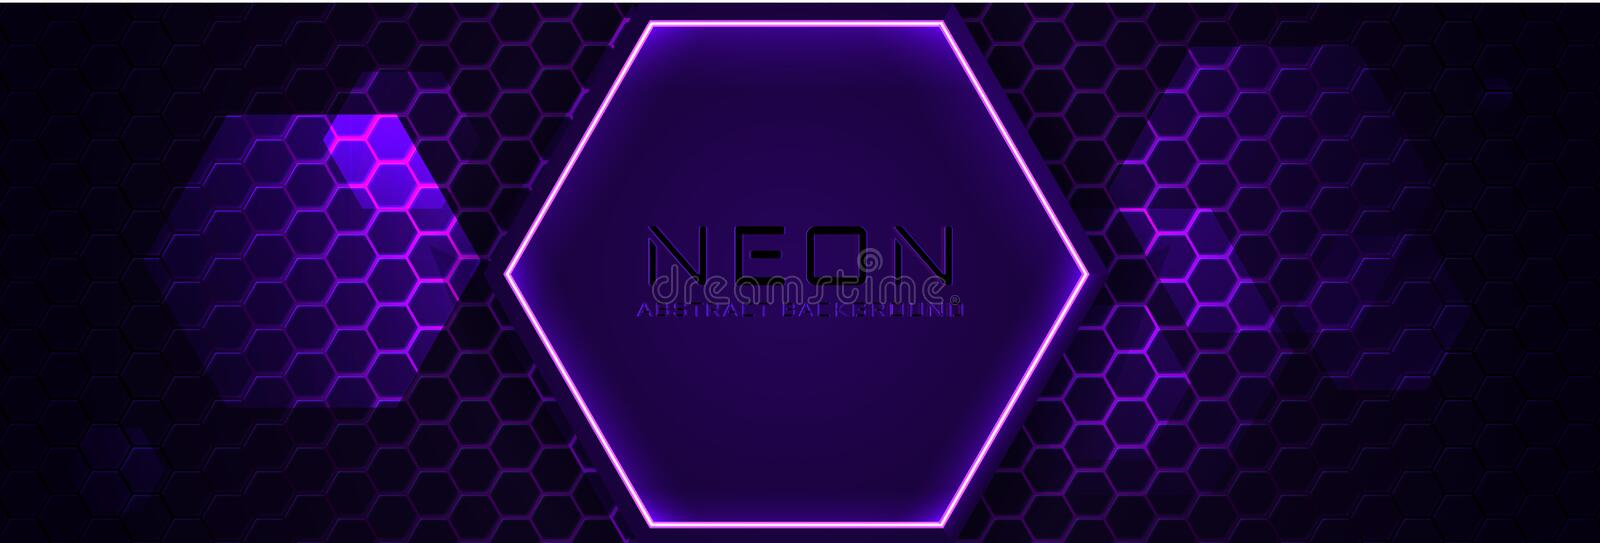 Abstract neon infographic background with violet light, line and texture. Vector banner design in dark night colour royalty free illustration